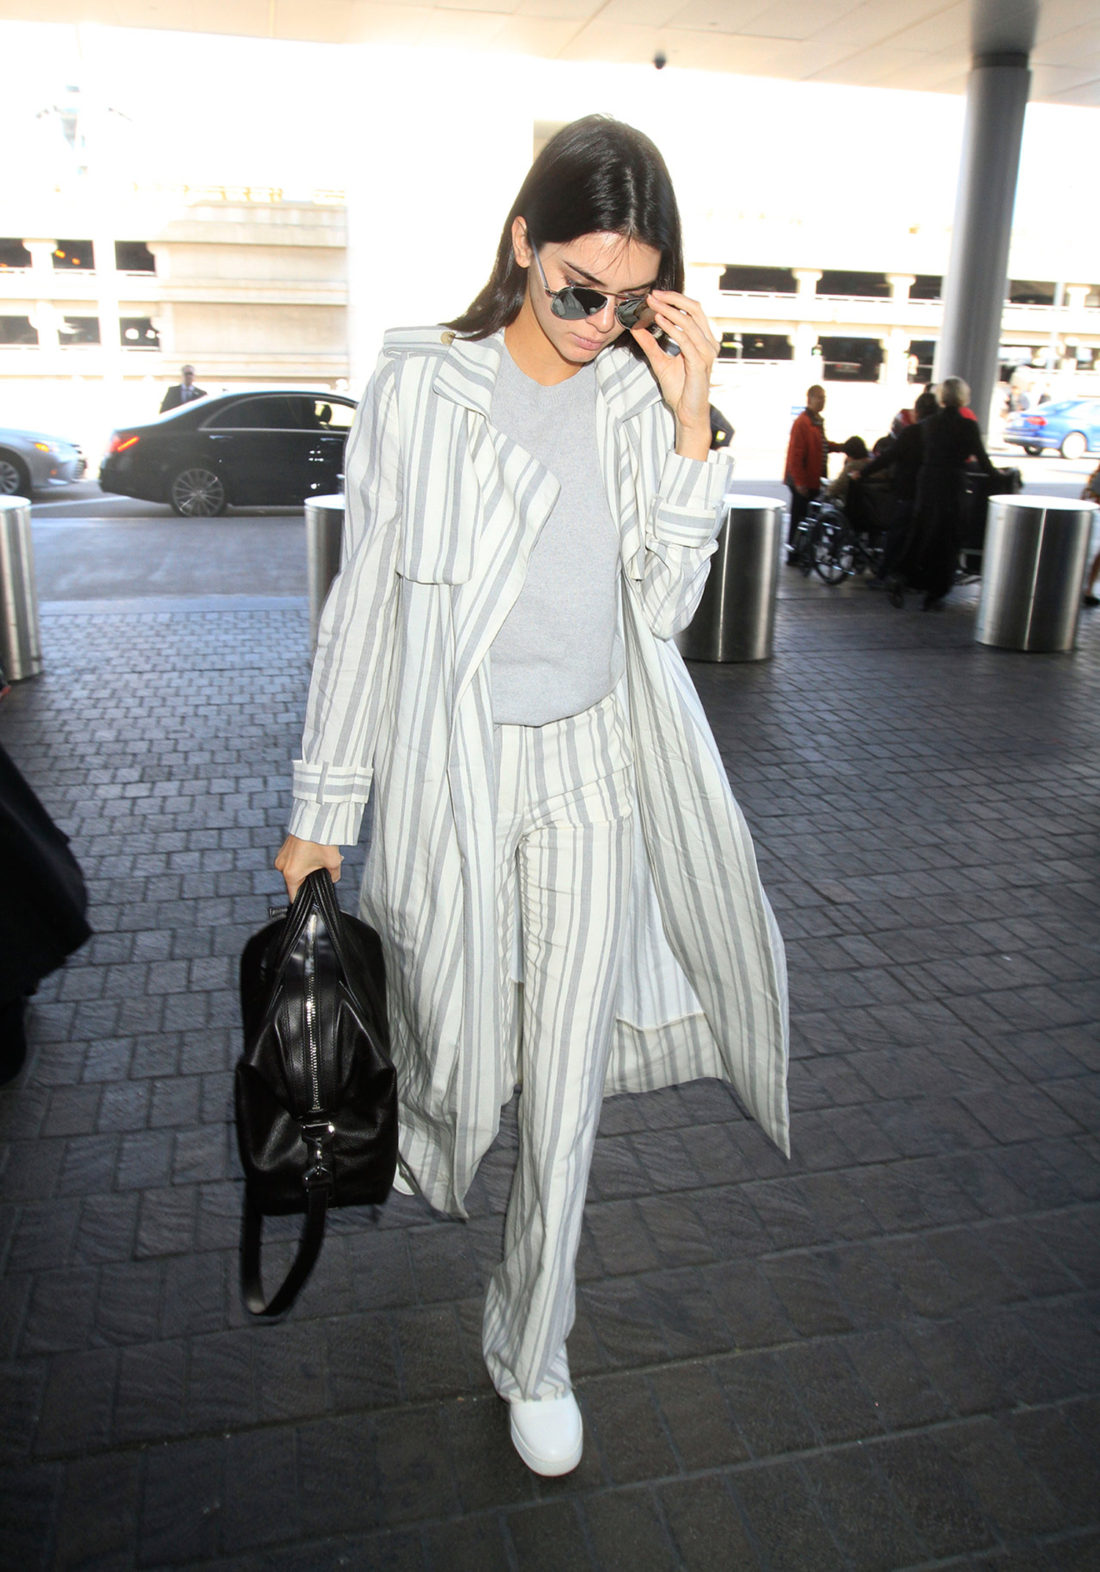 kendall-jenner-airport-style